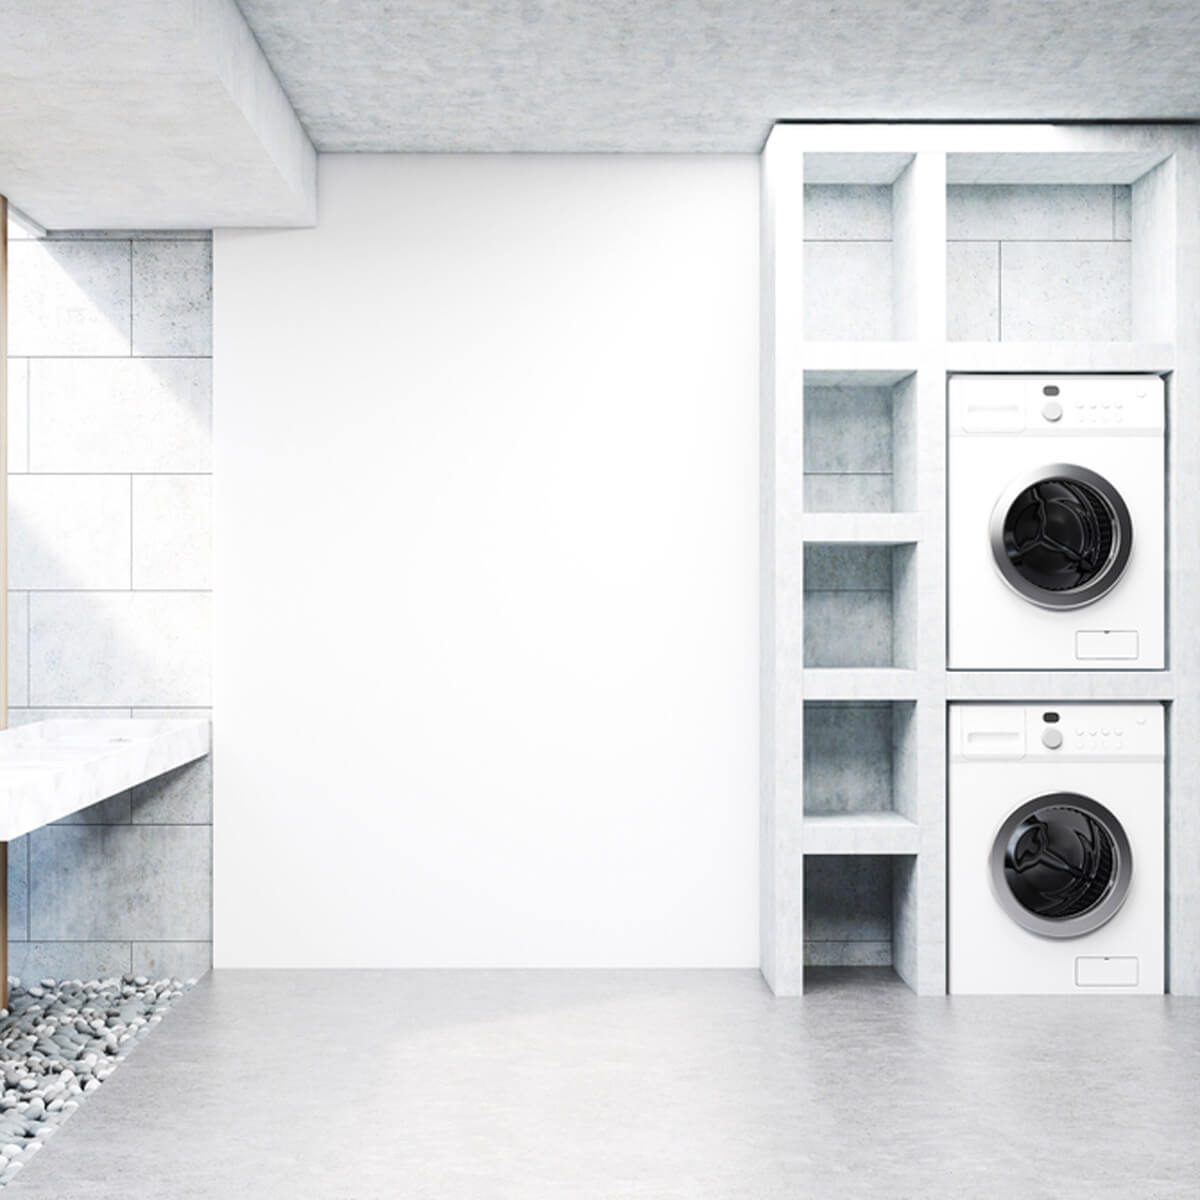 shutterstock_670453921 laundry room washer and dryer